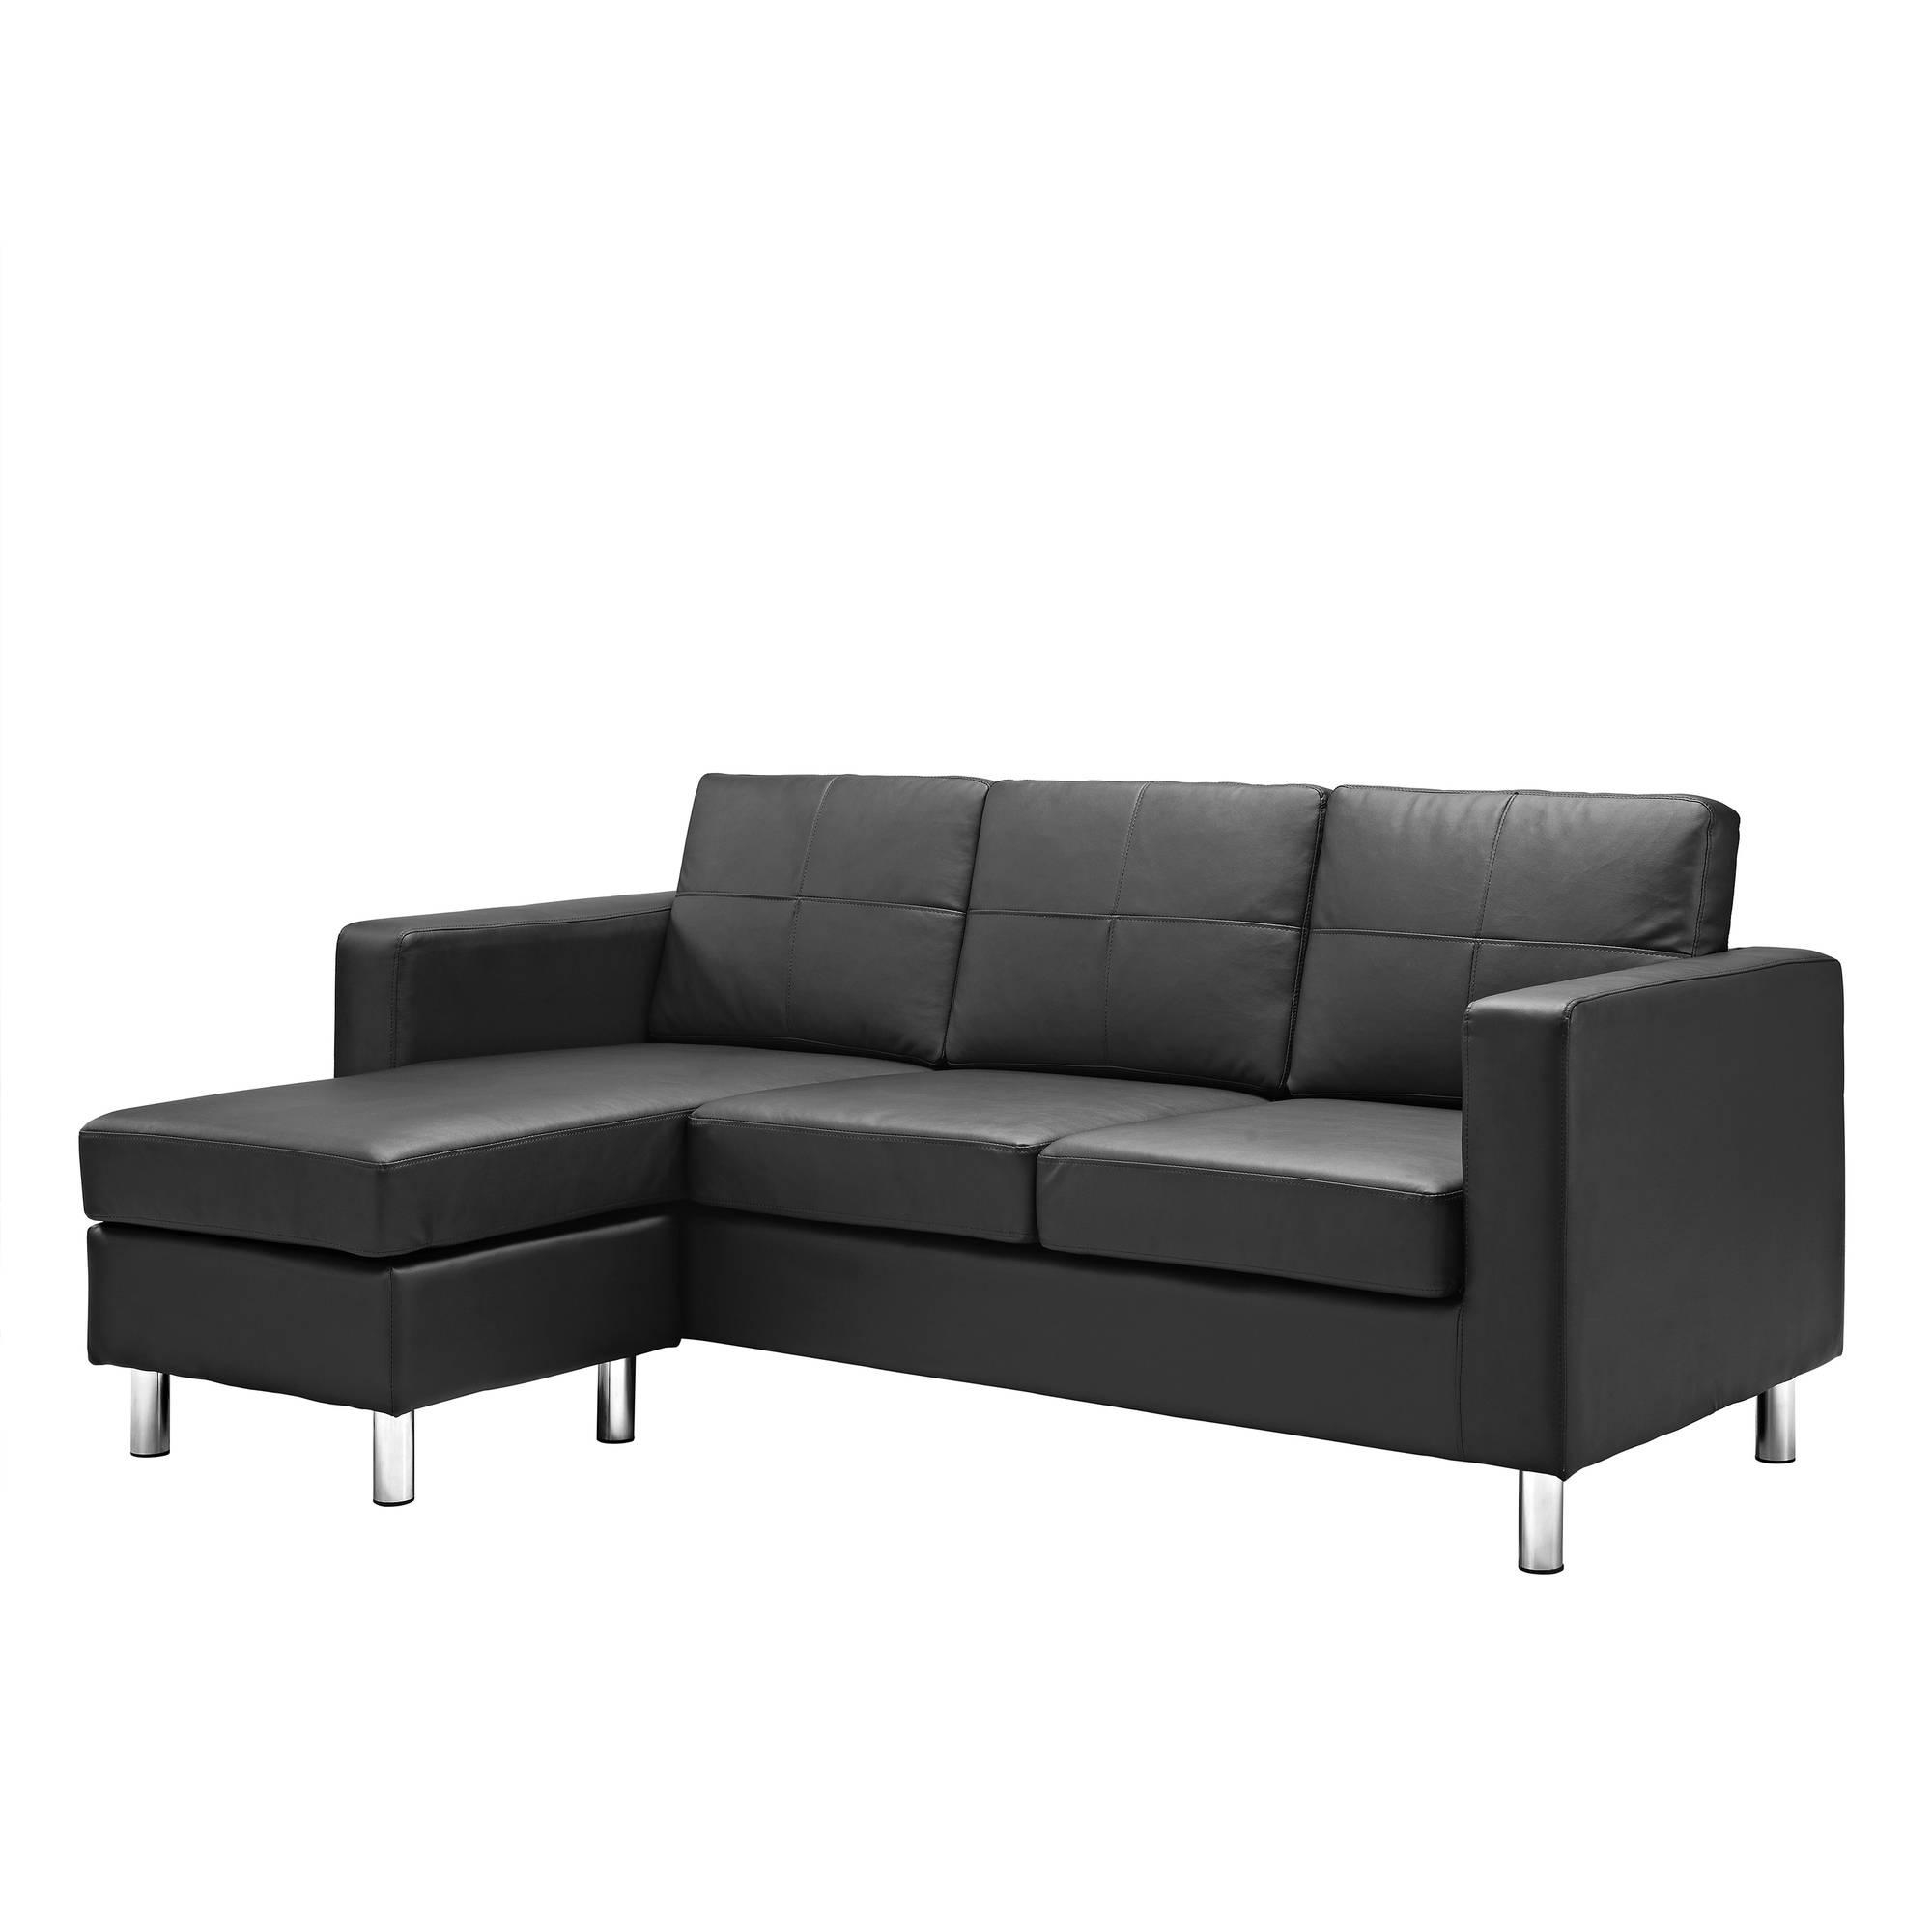 Dorel Living Small Spaces Configurable Sectional Sofa, Multiple Inside Mini Sectional Sofas (View 12 of 20)